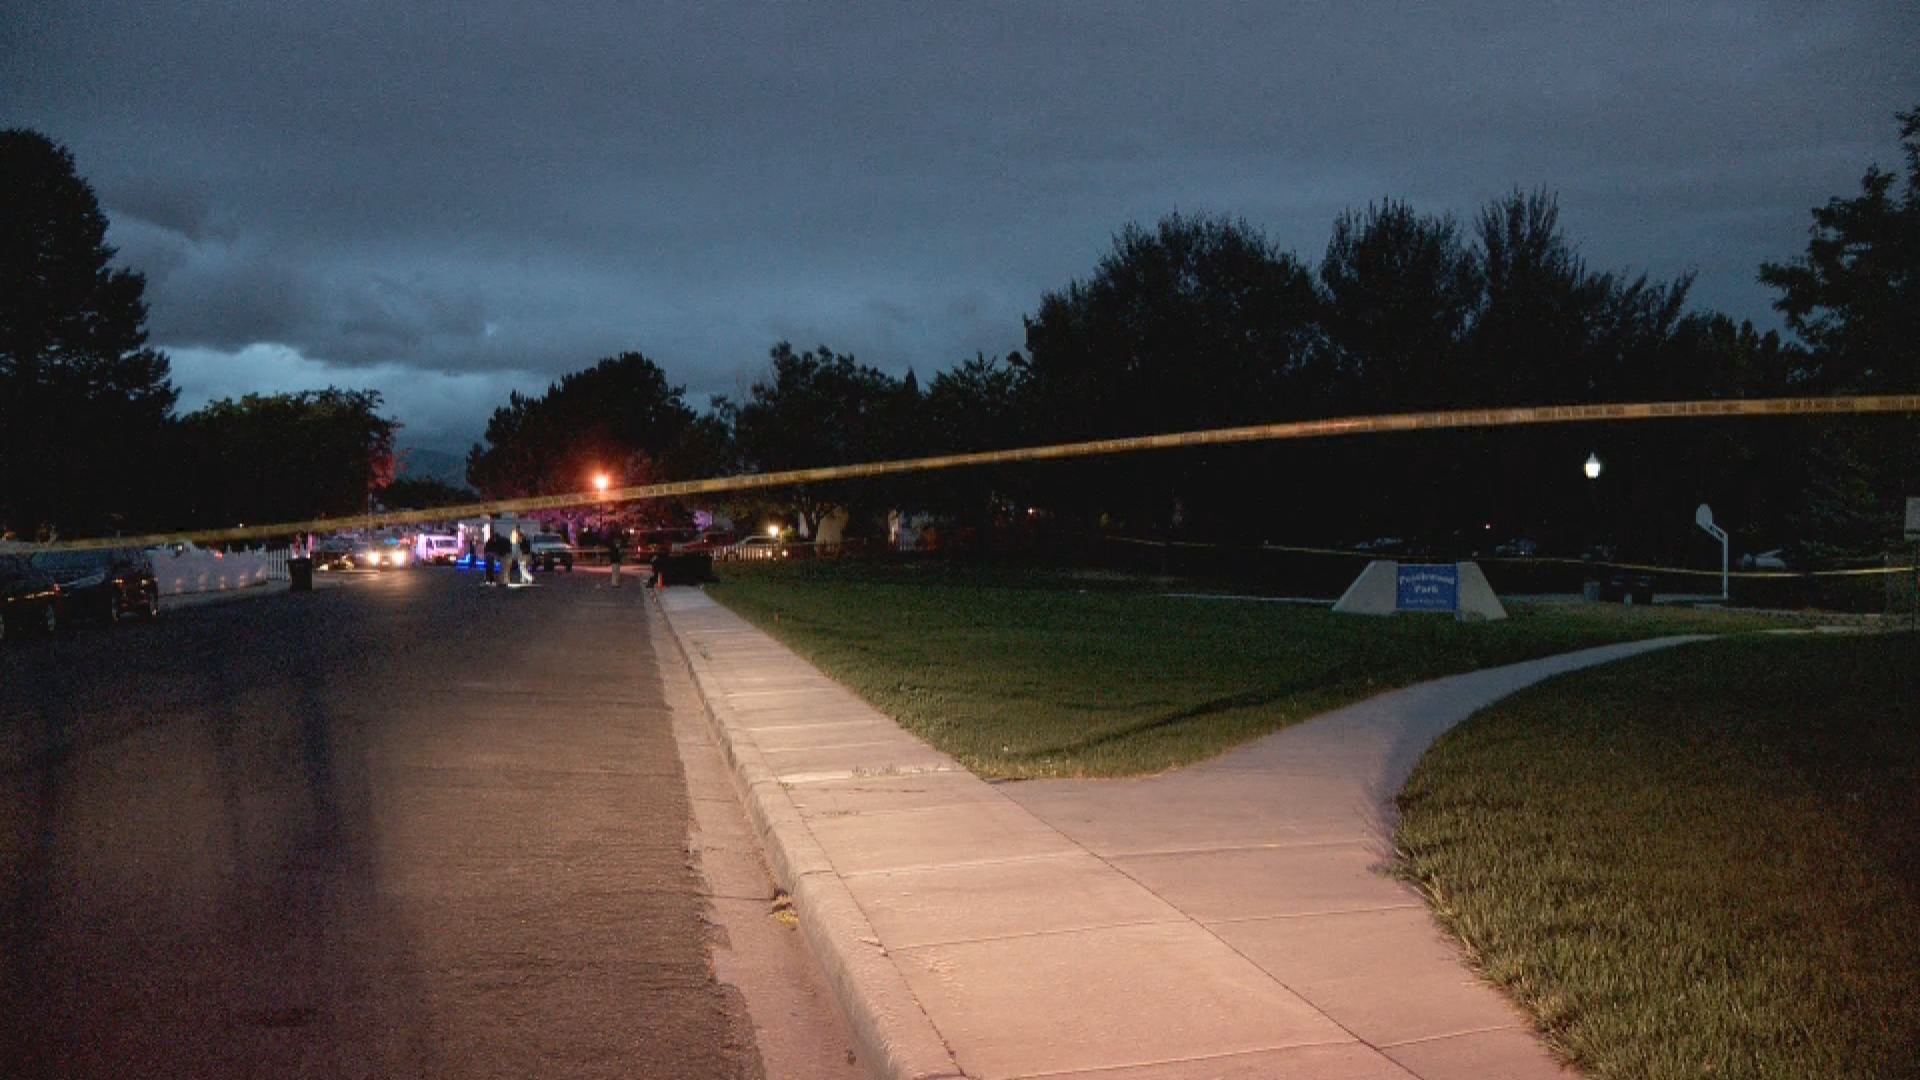 Crime scene tape blocks off the scene where 17-year-old Edwin Reyes was shot in West Valley City on June 28, 2020. (Photo: KUTV)